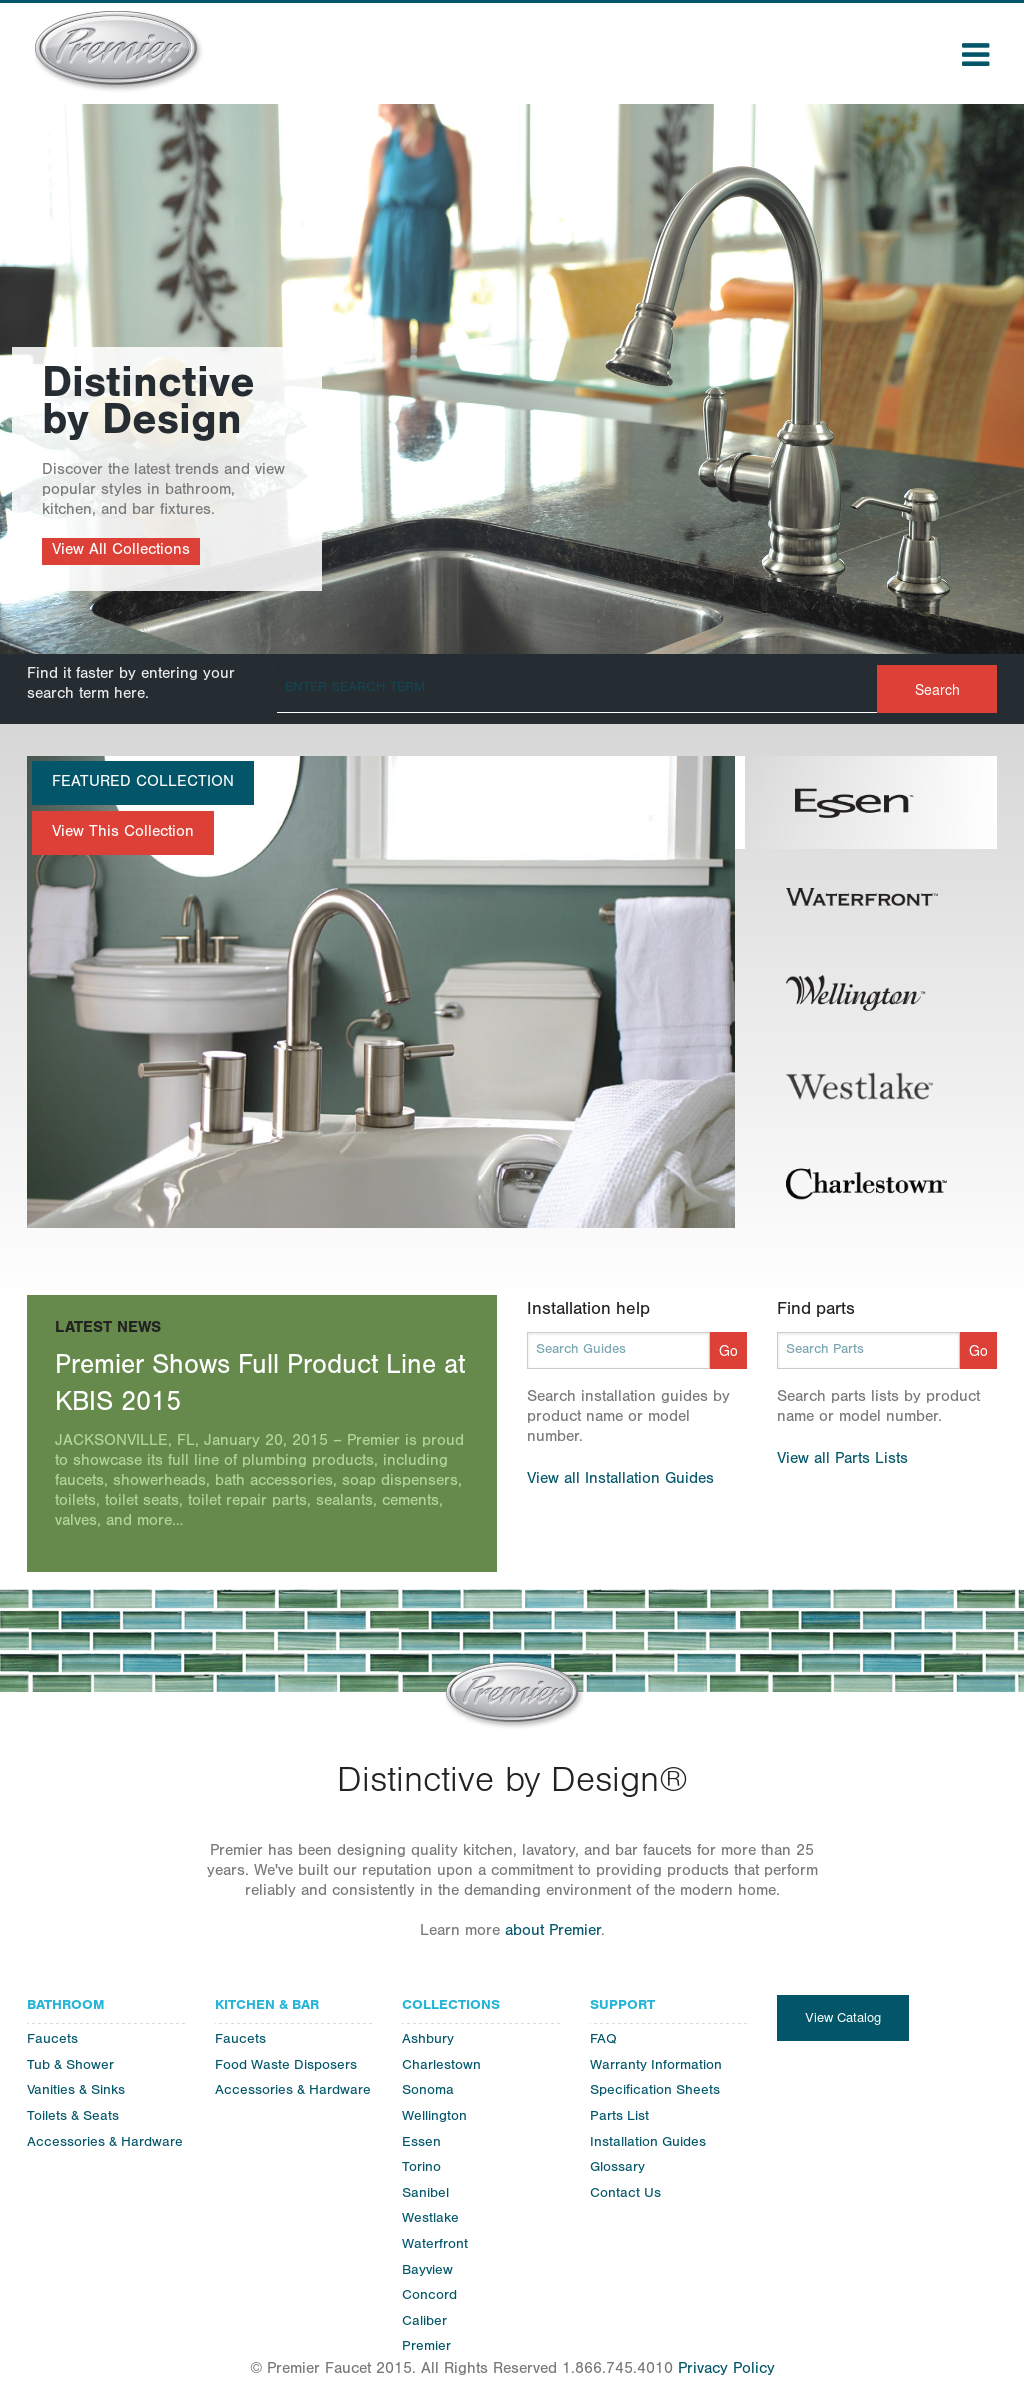 Premier Faucet Competitors, Revenue and Employees - Owler Company ...